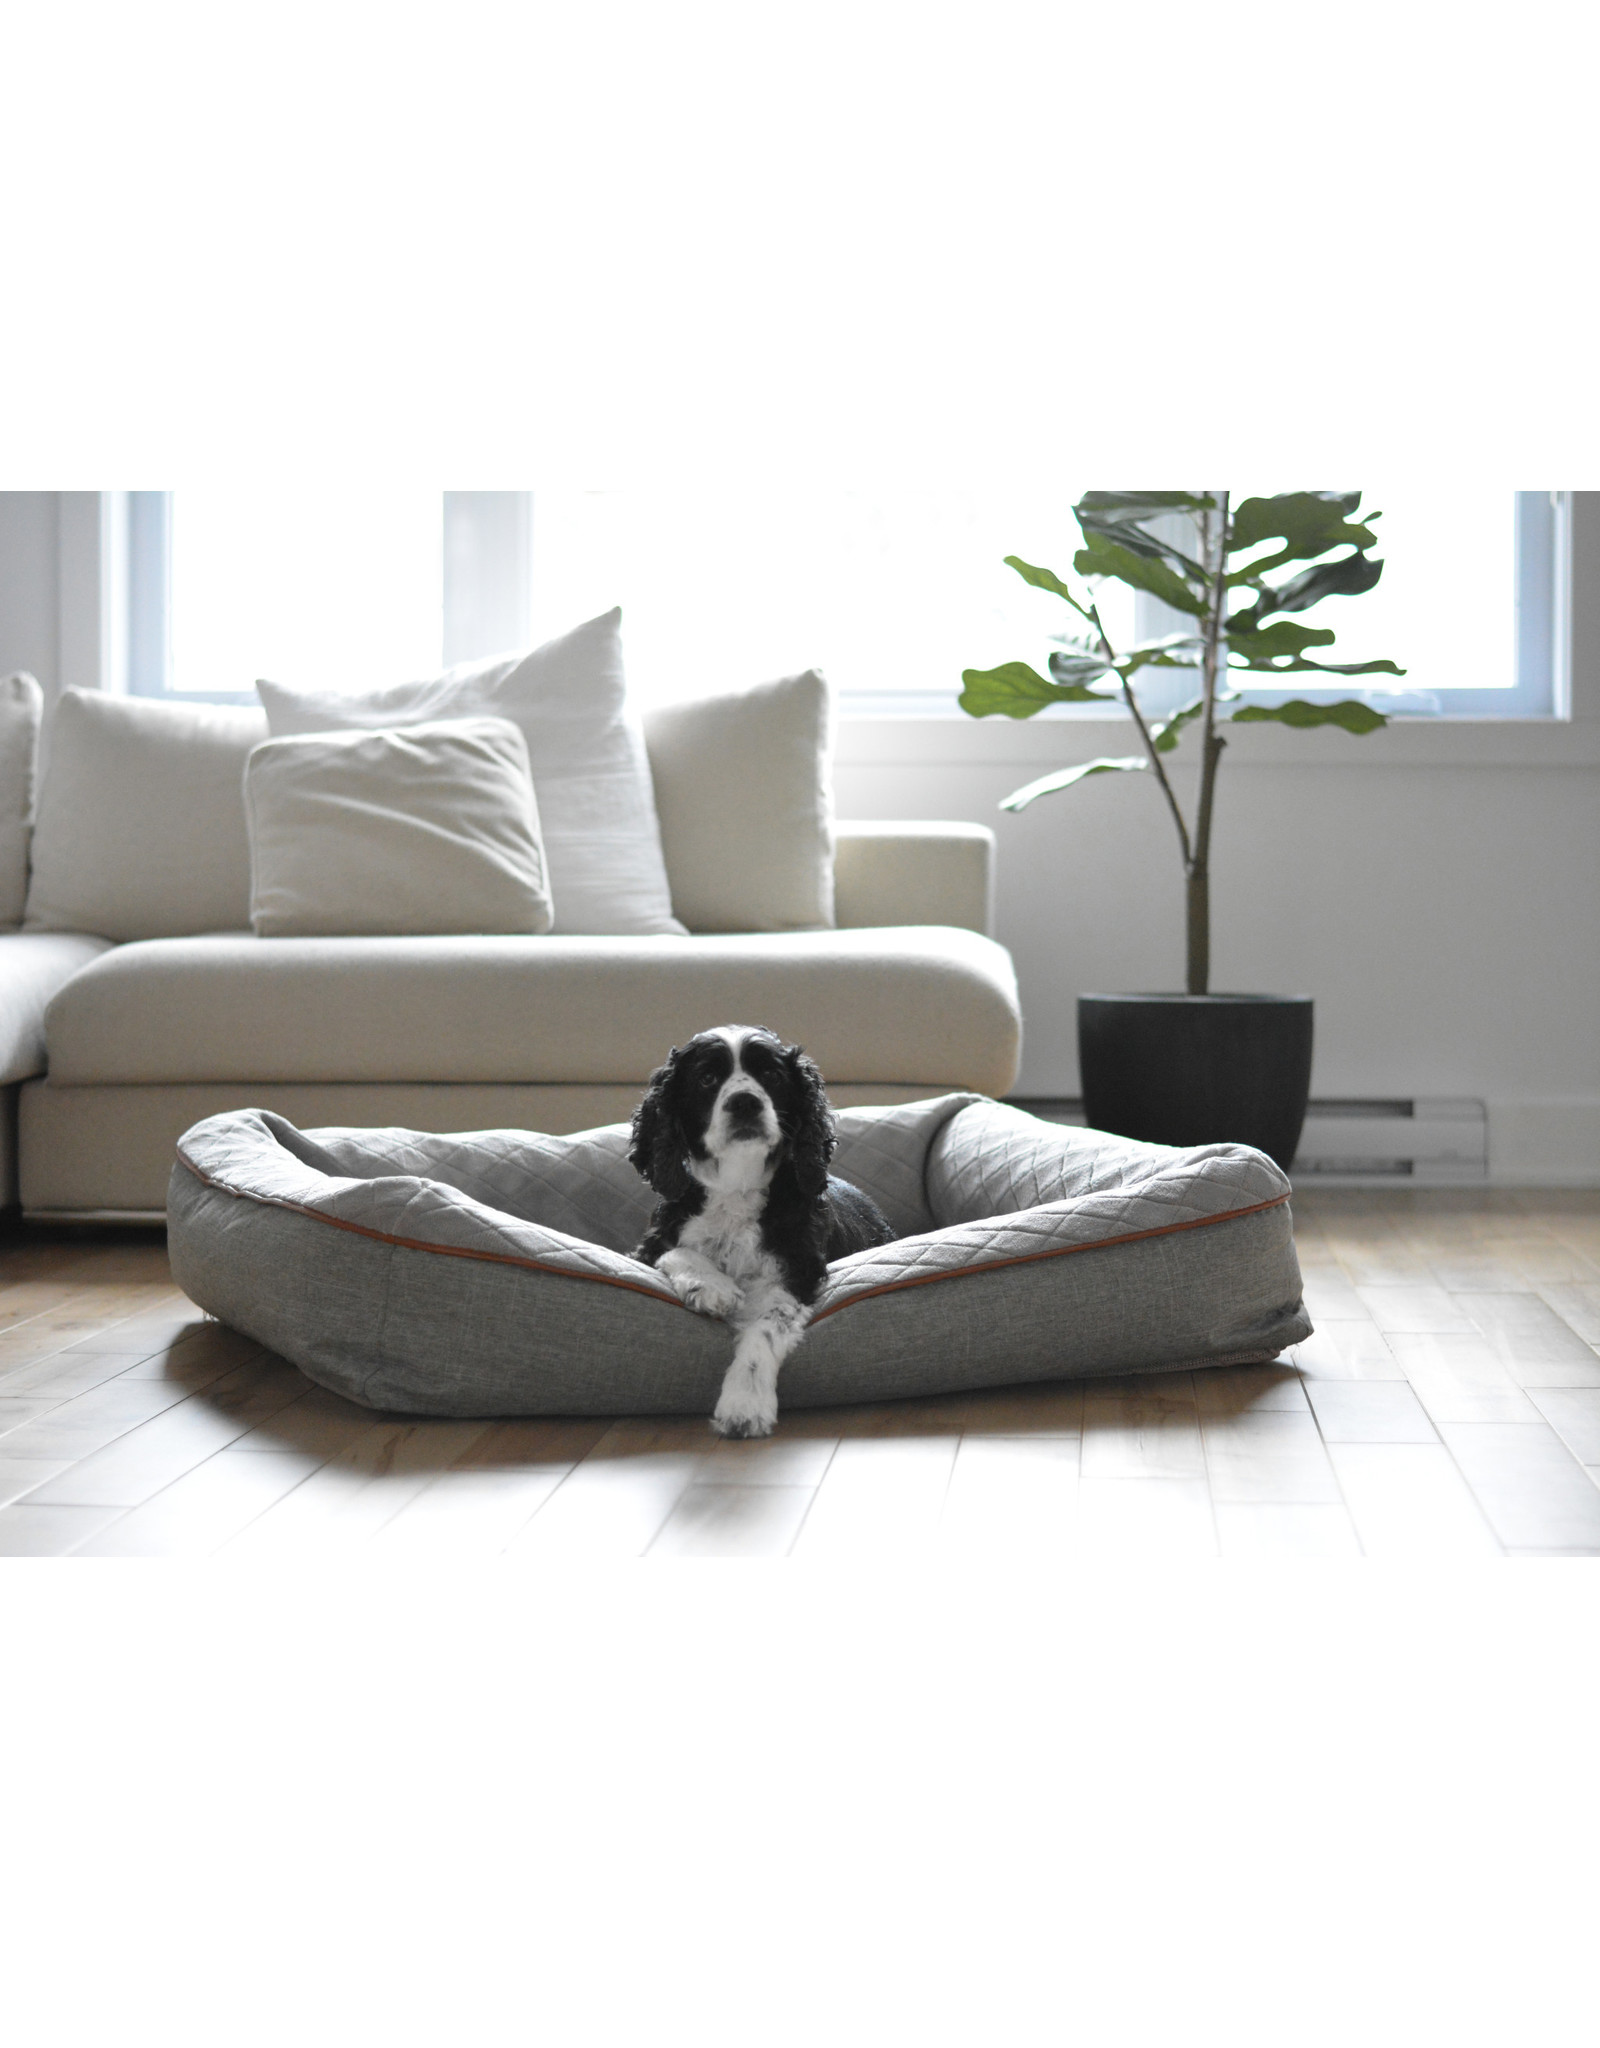 Be One Breed BeOneBreed Snuggle Bed M/L 32x40 - LIGHT Grey